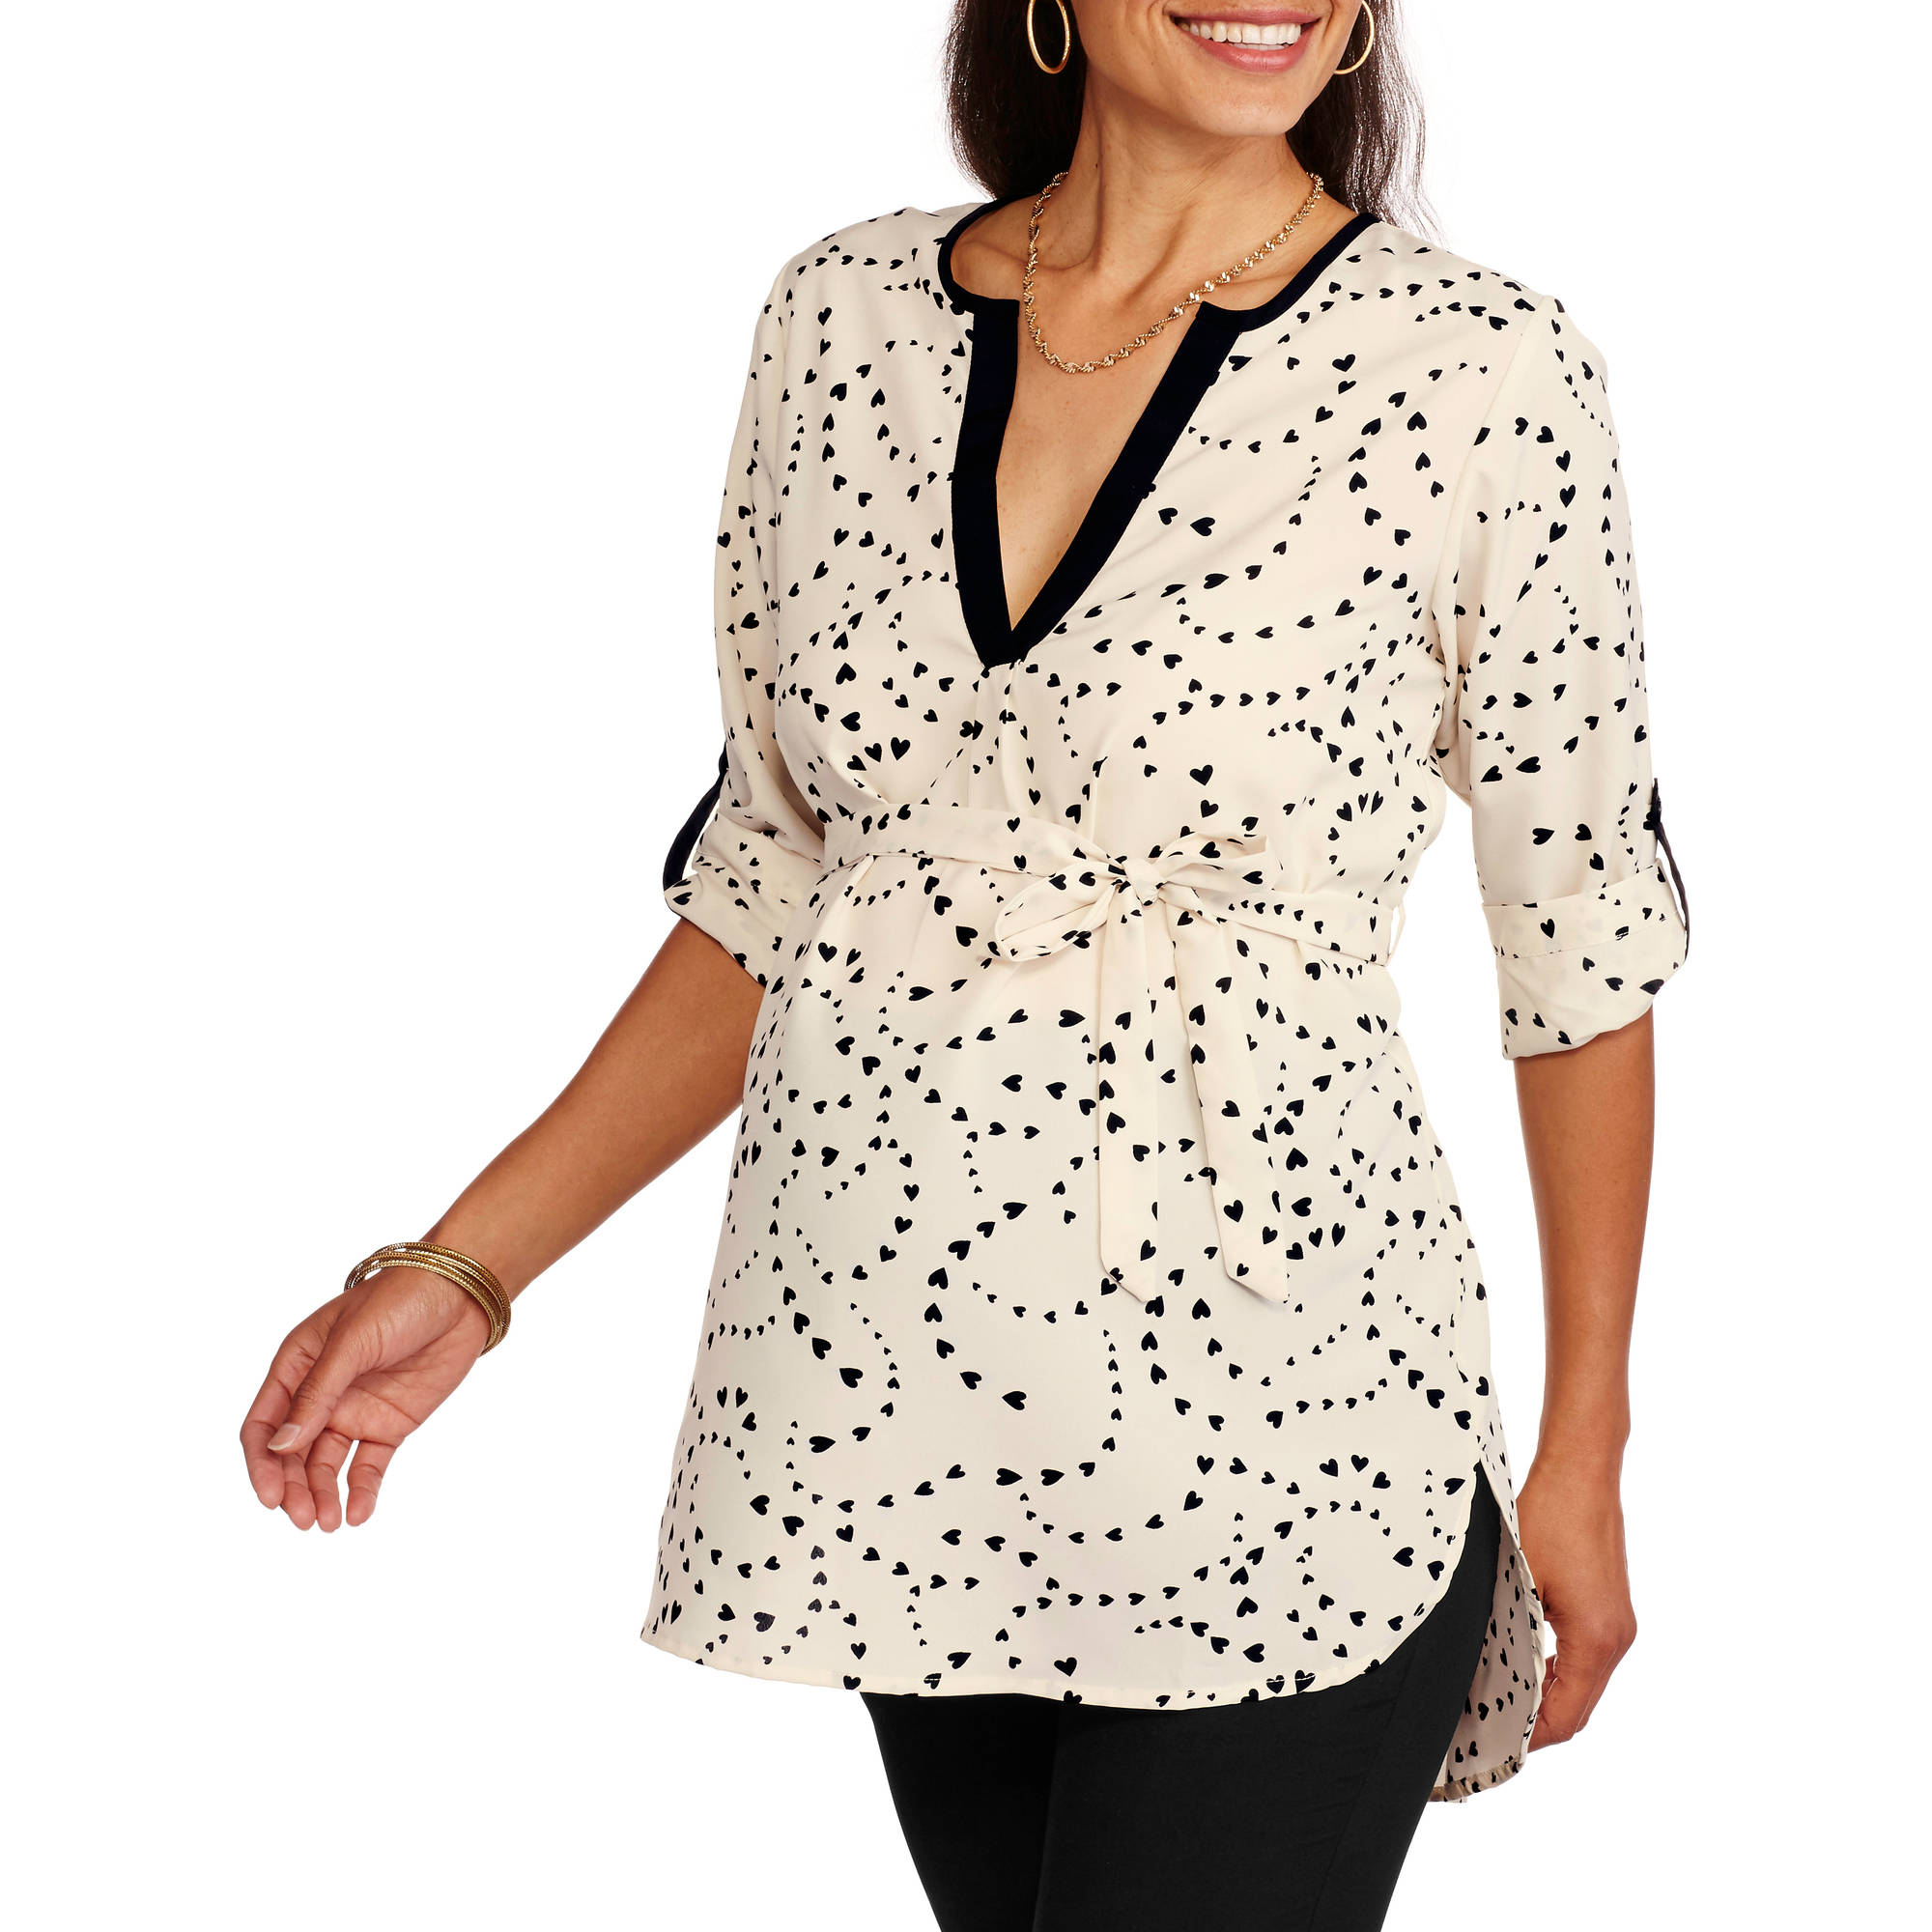 Oh! Mamma Maternity Heart Print Shirt with Contrast Trim and Tie Belt